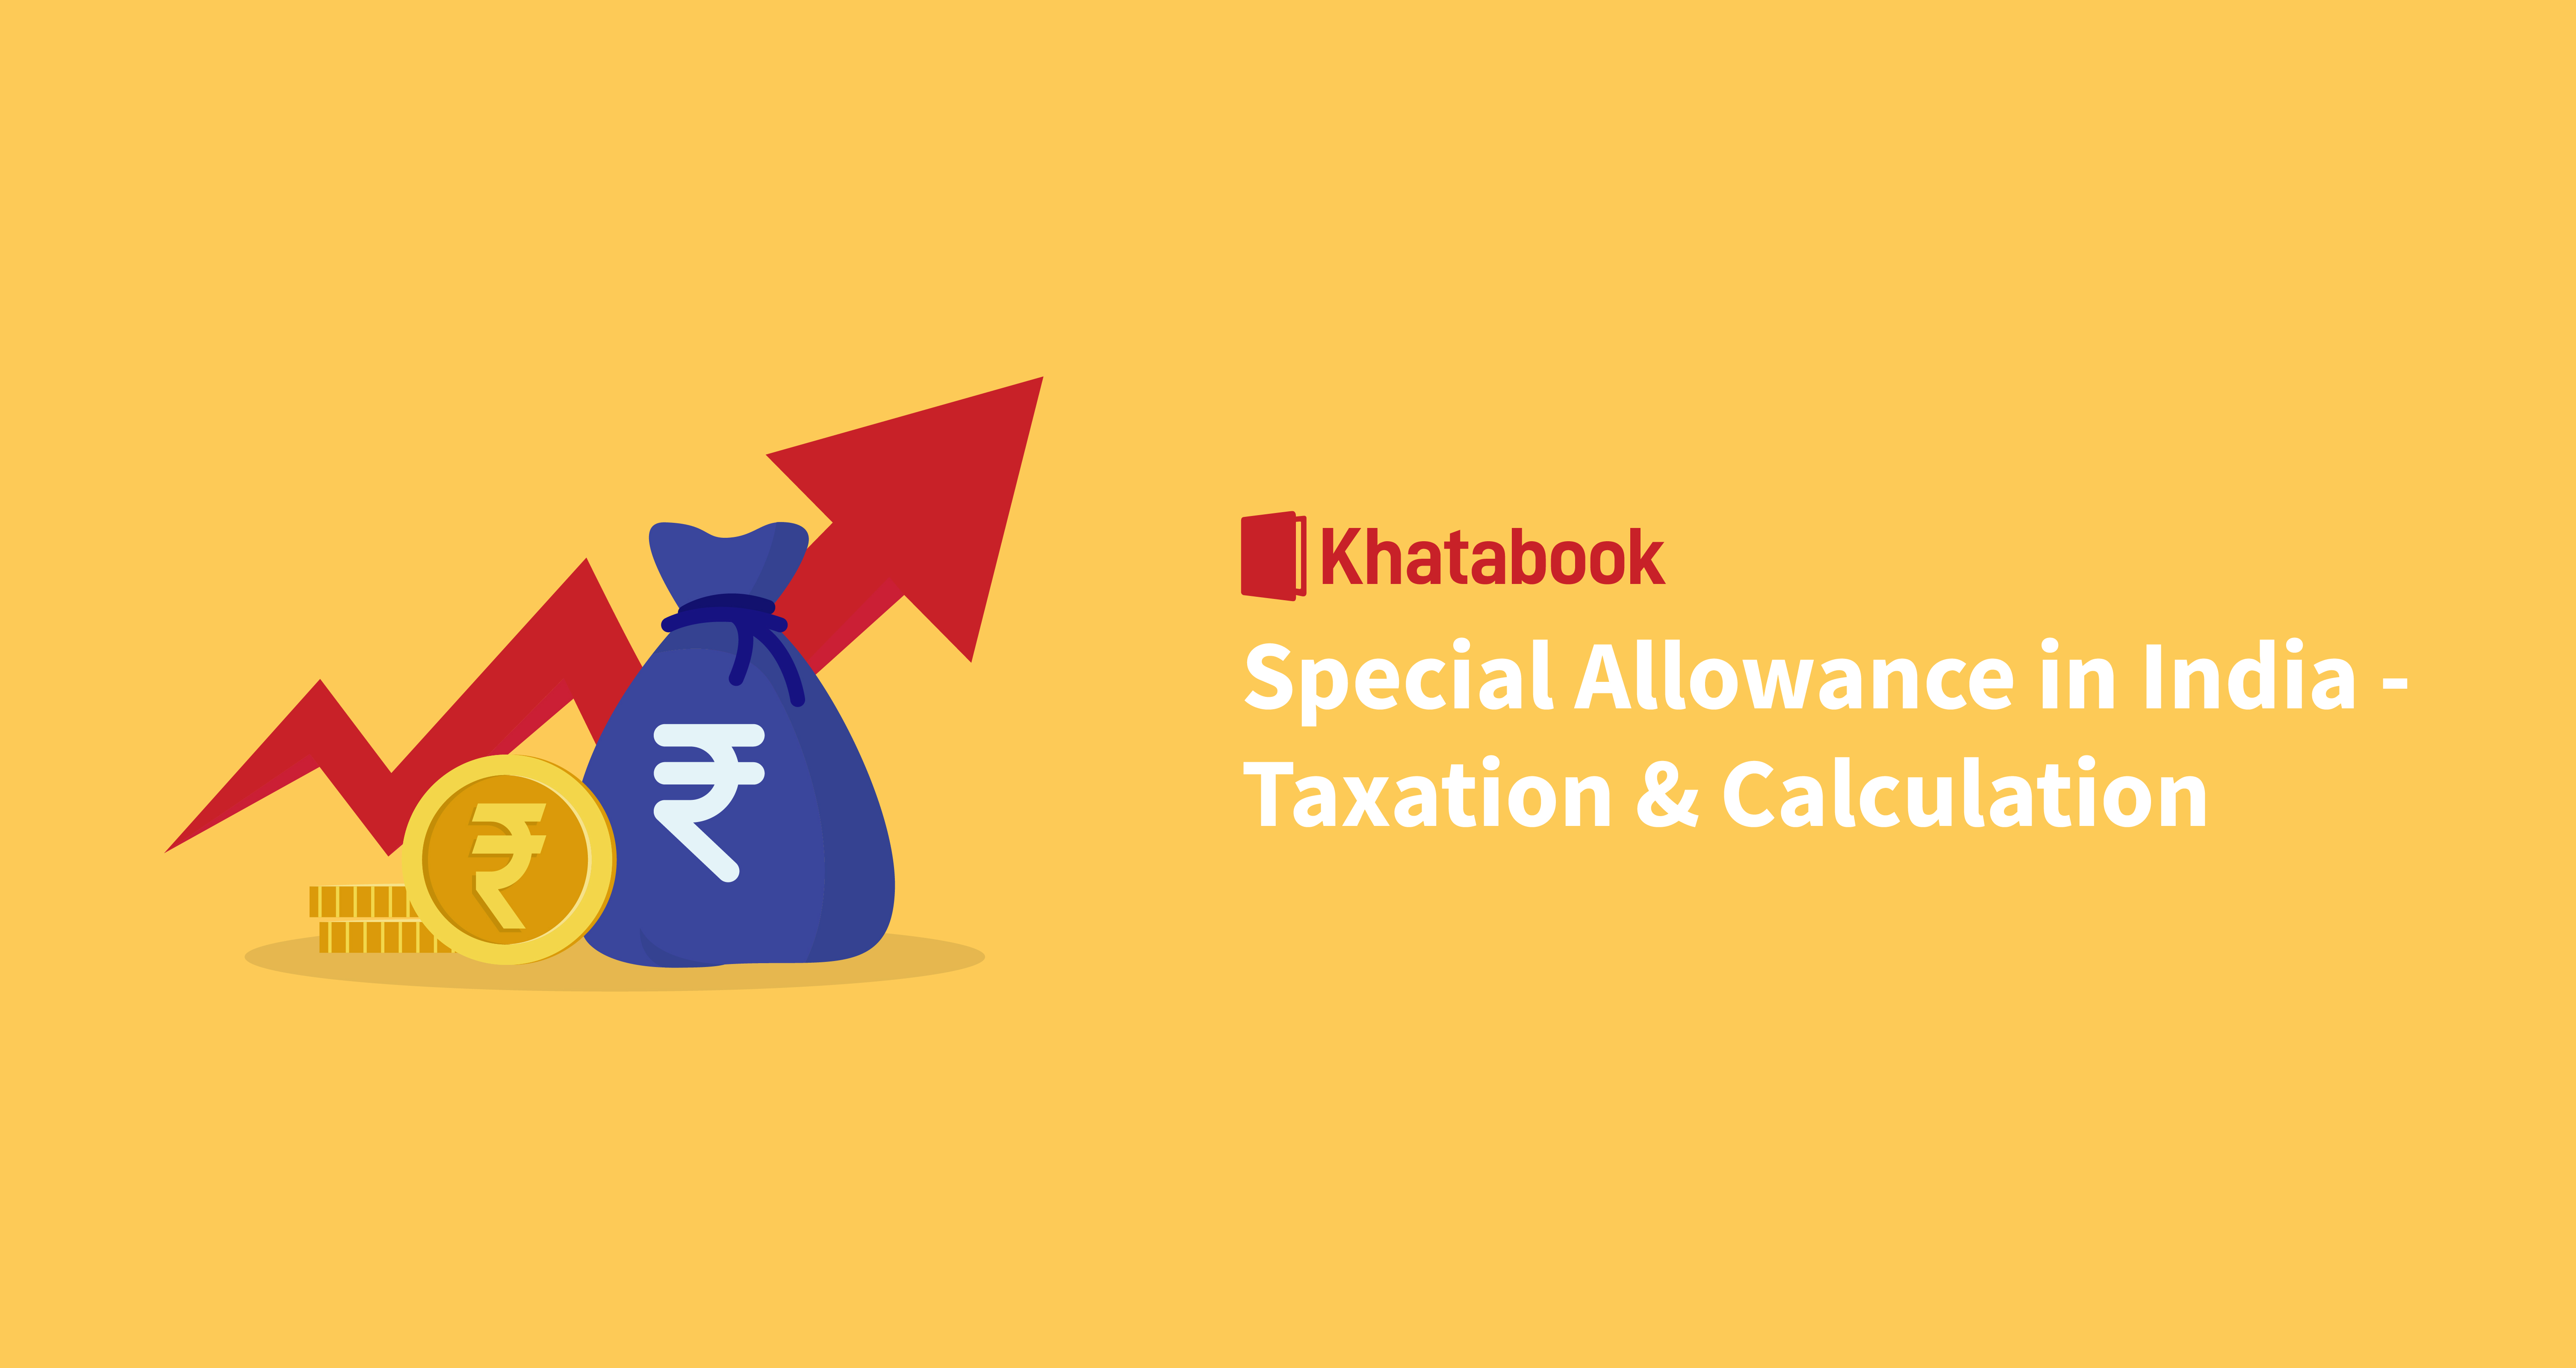 All About Special Allowance - its Taxation & Calculation in India